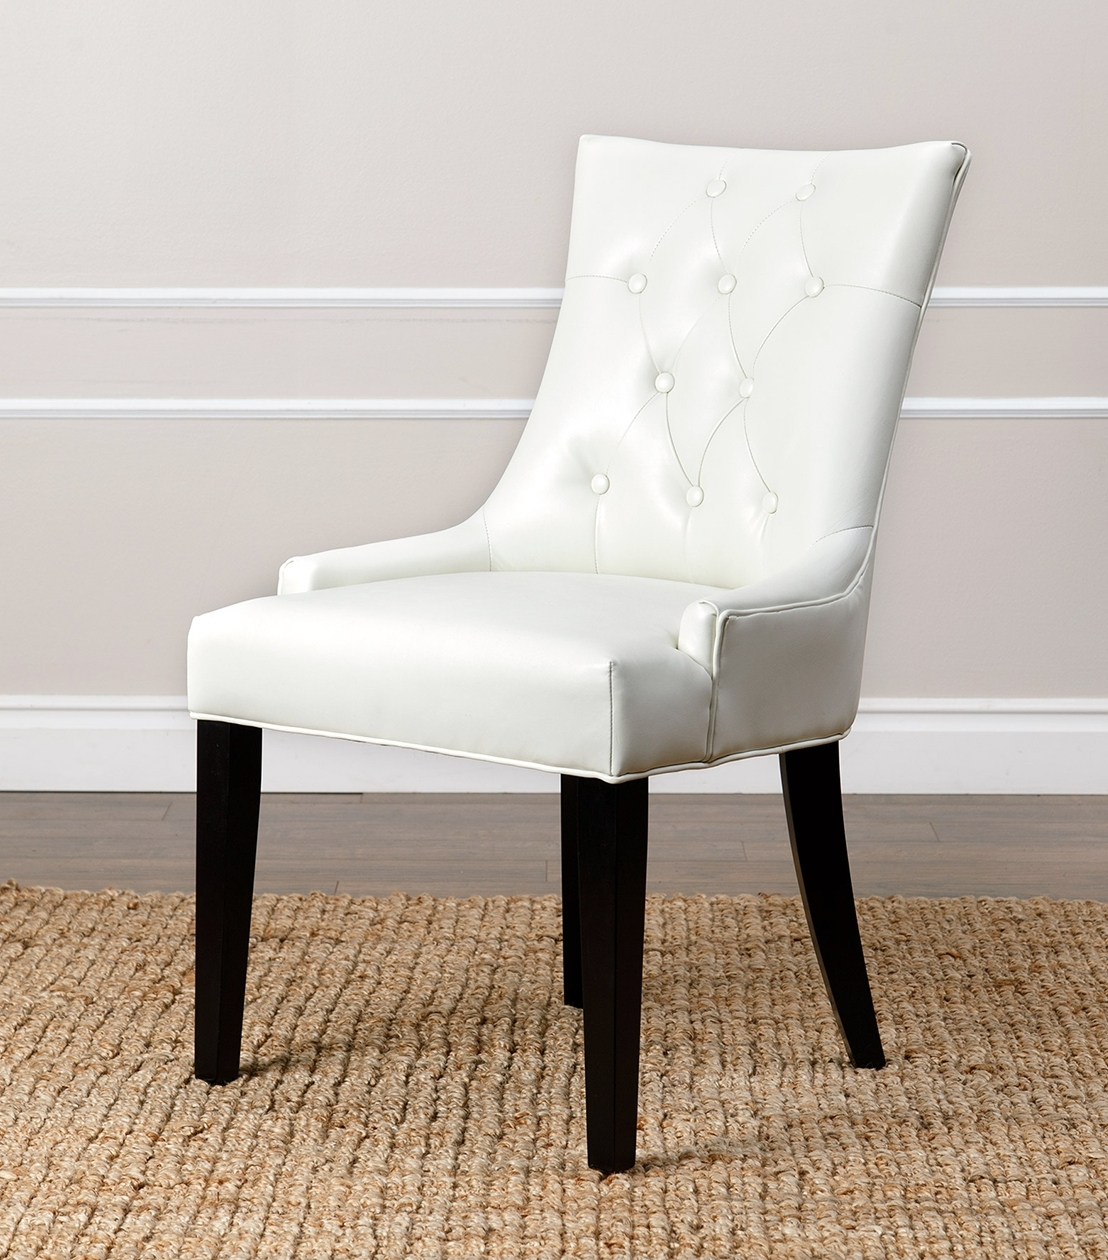 Dining Chairs : Napa Leather Dining Chair, Ivory Intended For Best And Newest Ivory Leather Dining Chairs (View 23 of 25)